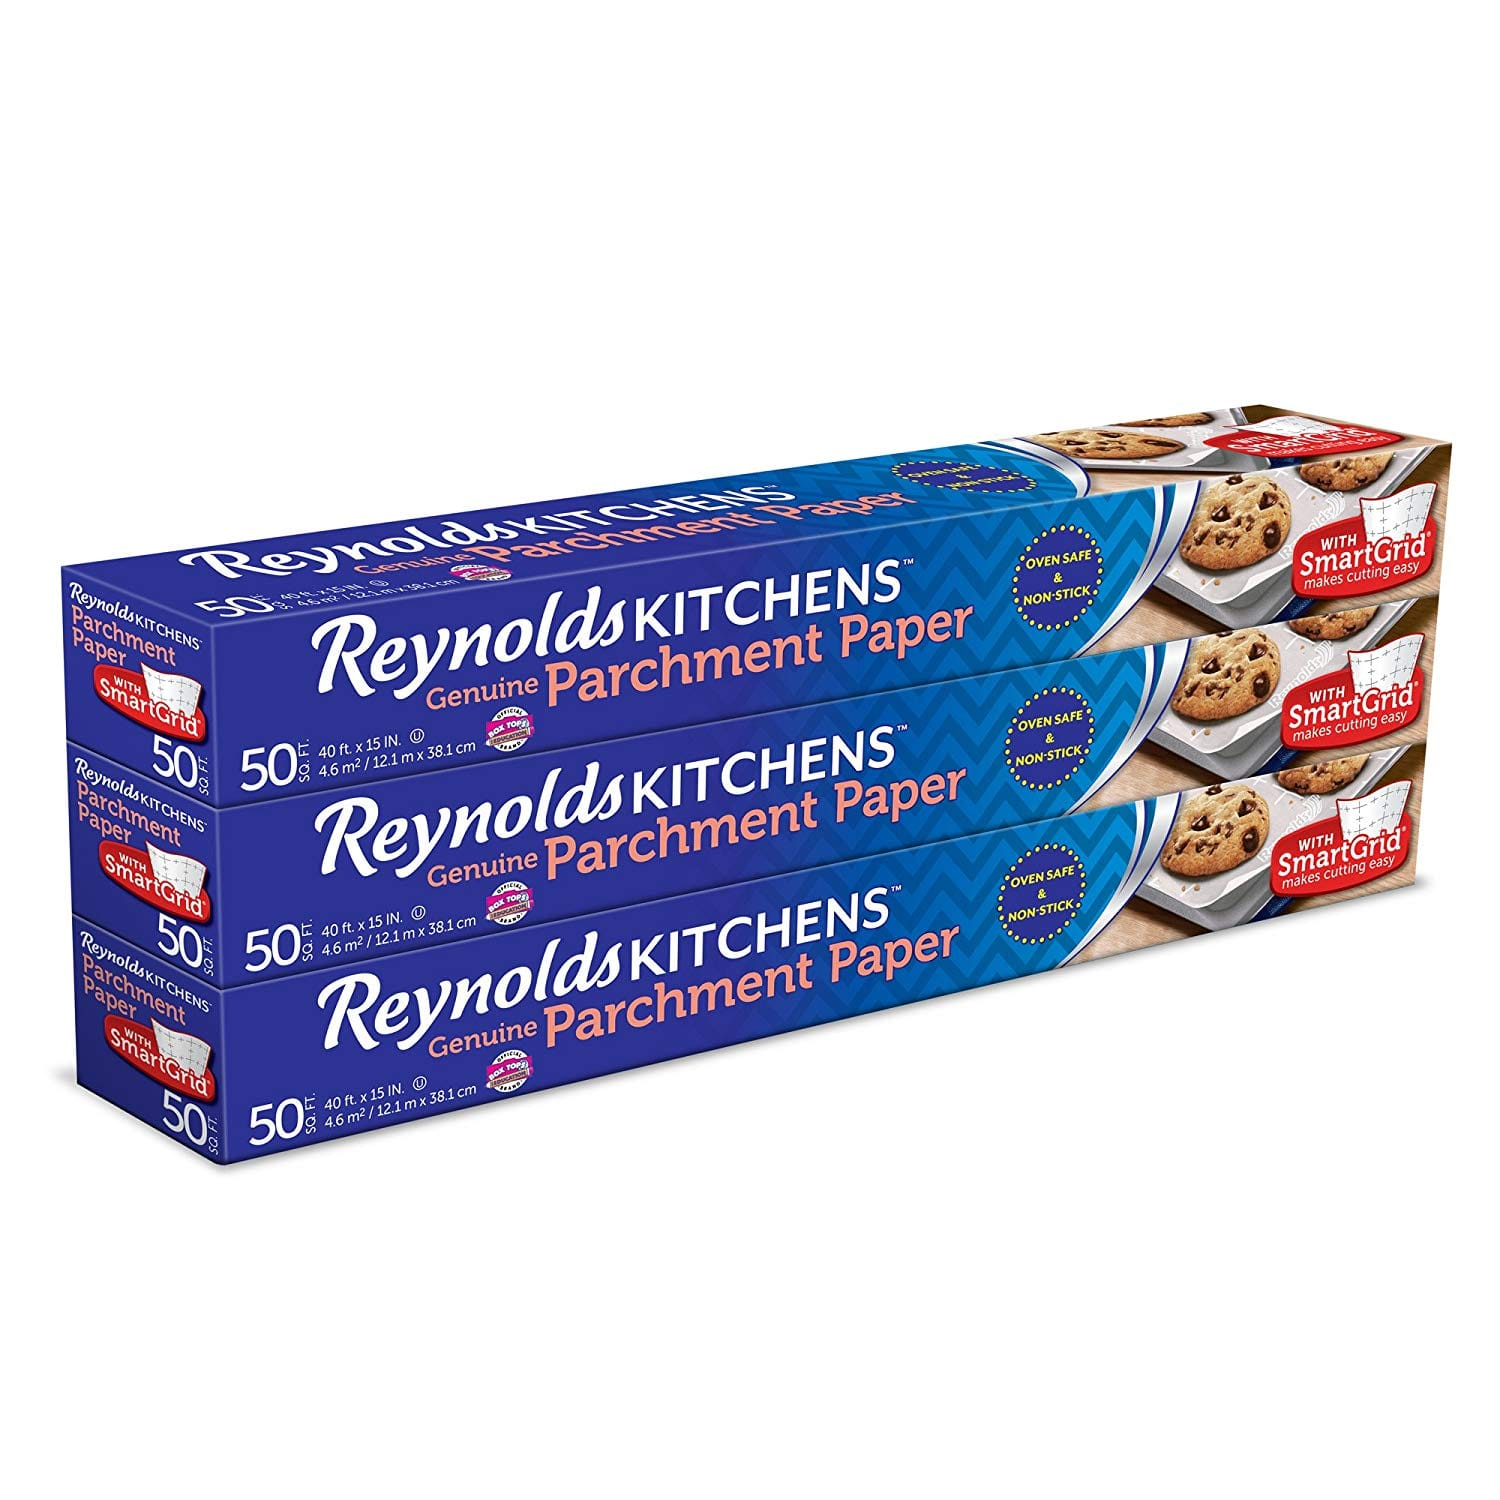 SAVE 20% on Reynolds Kitchens Parchment Paper! $9.59